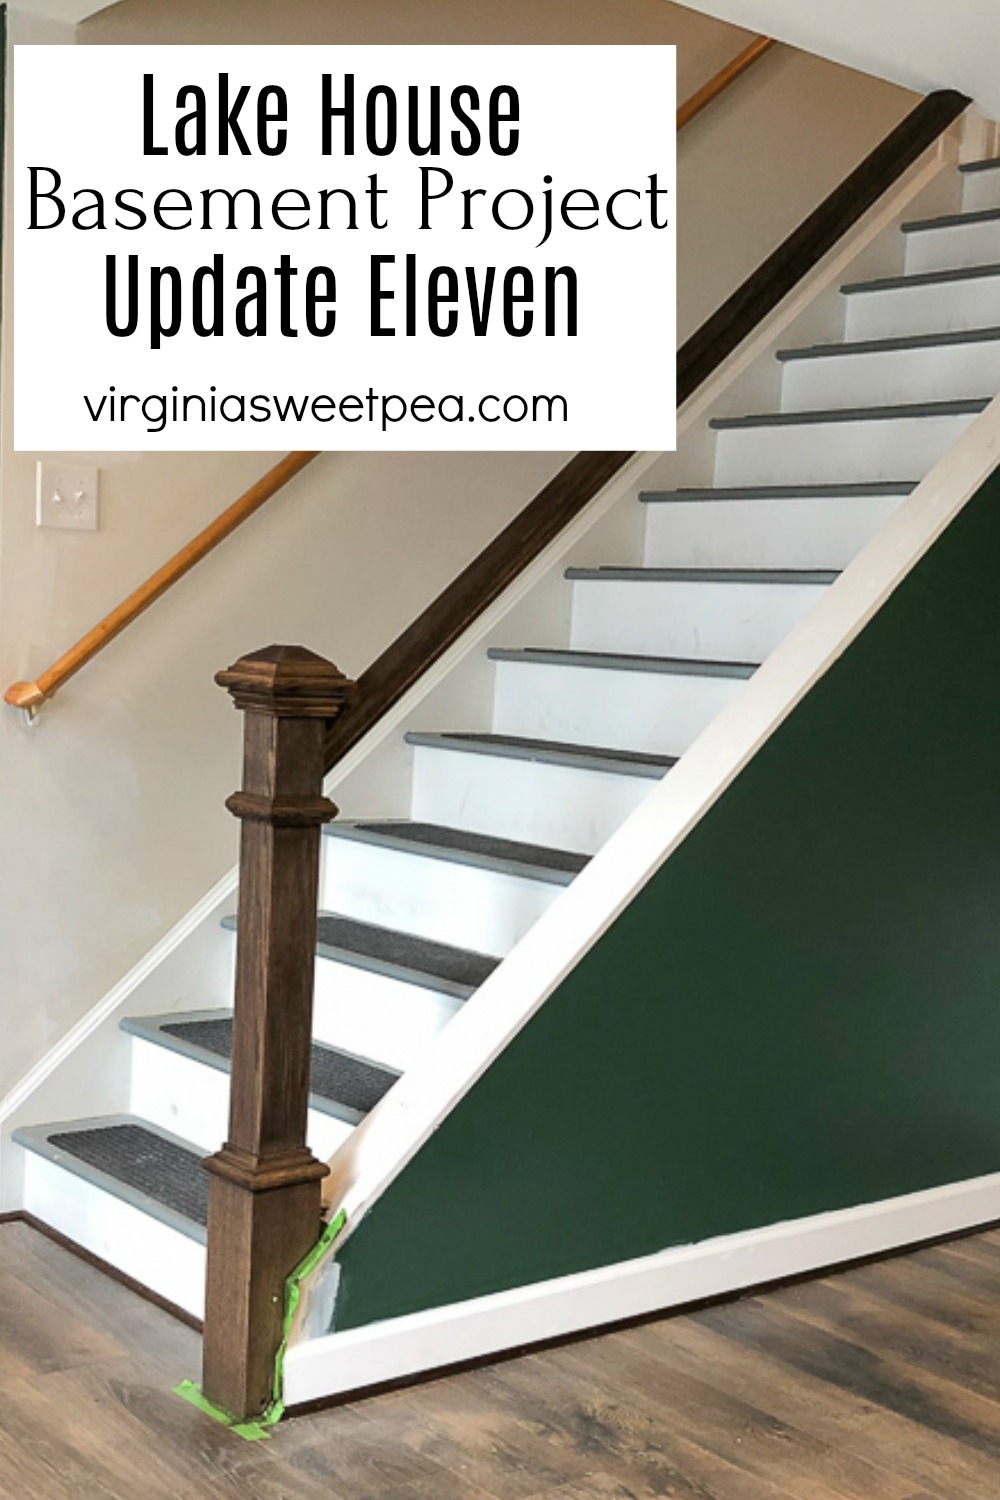 Lake House Basement Project - Update Eleven - This update includes adding a banister to the stairs, staining wood doors, and continuing to frame windows. #smithmountainlake #basementproject #finishingabasement #banister #howtoinstallabanister via @spaula